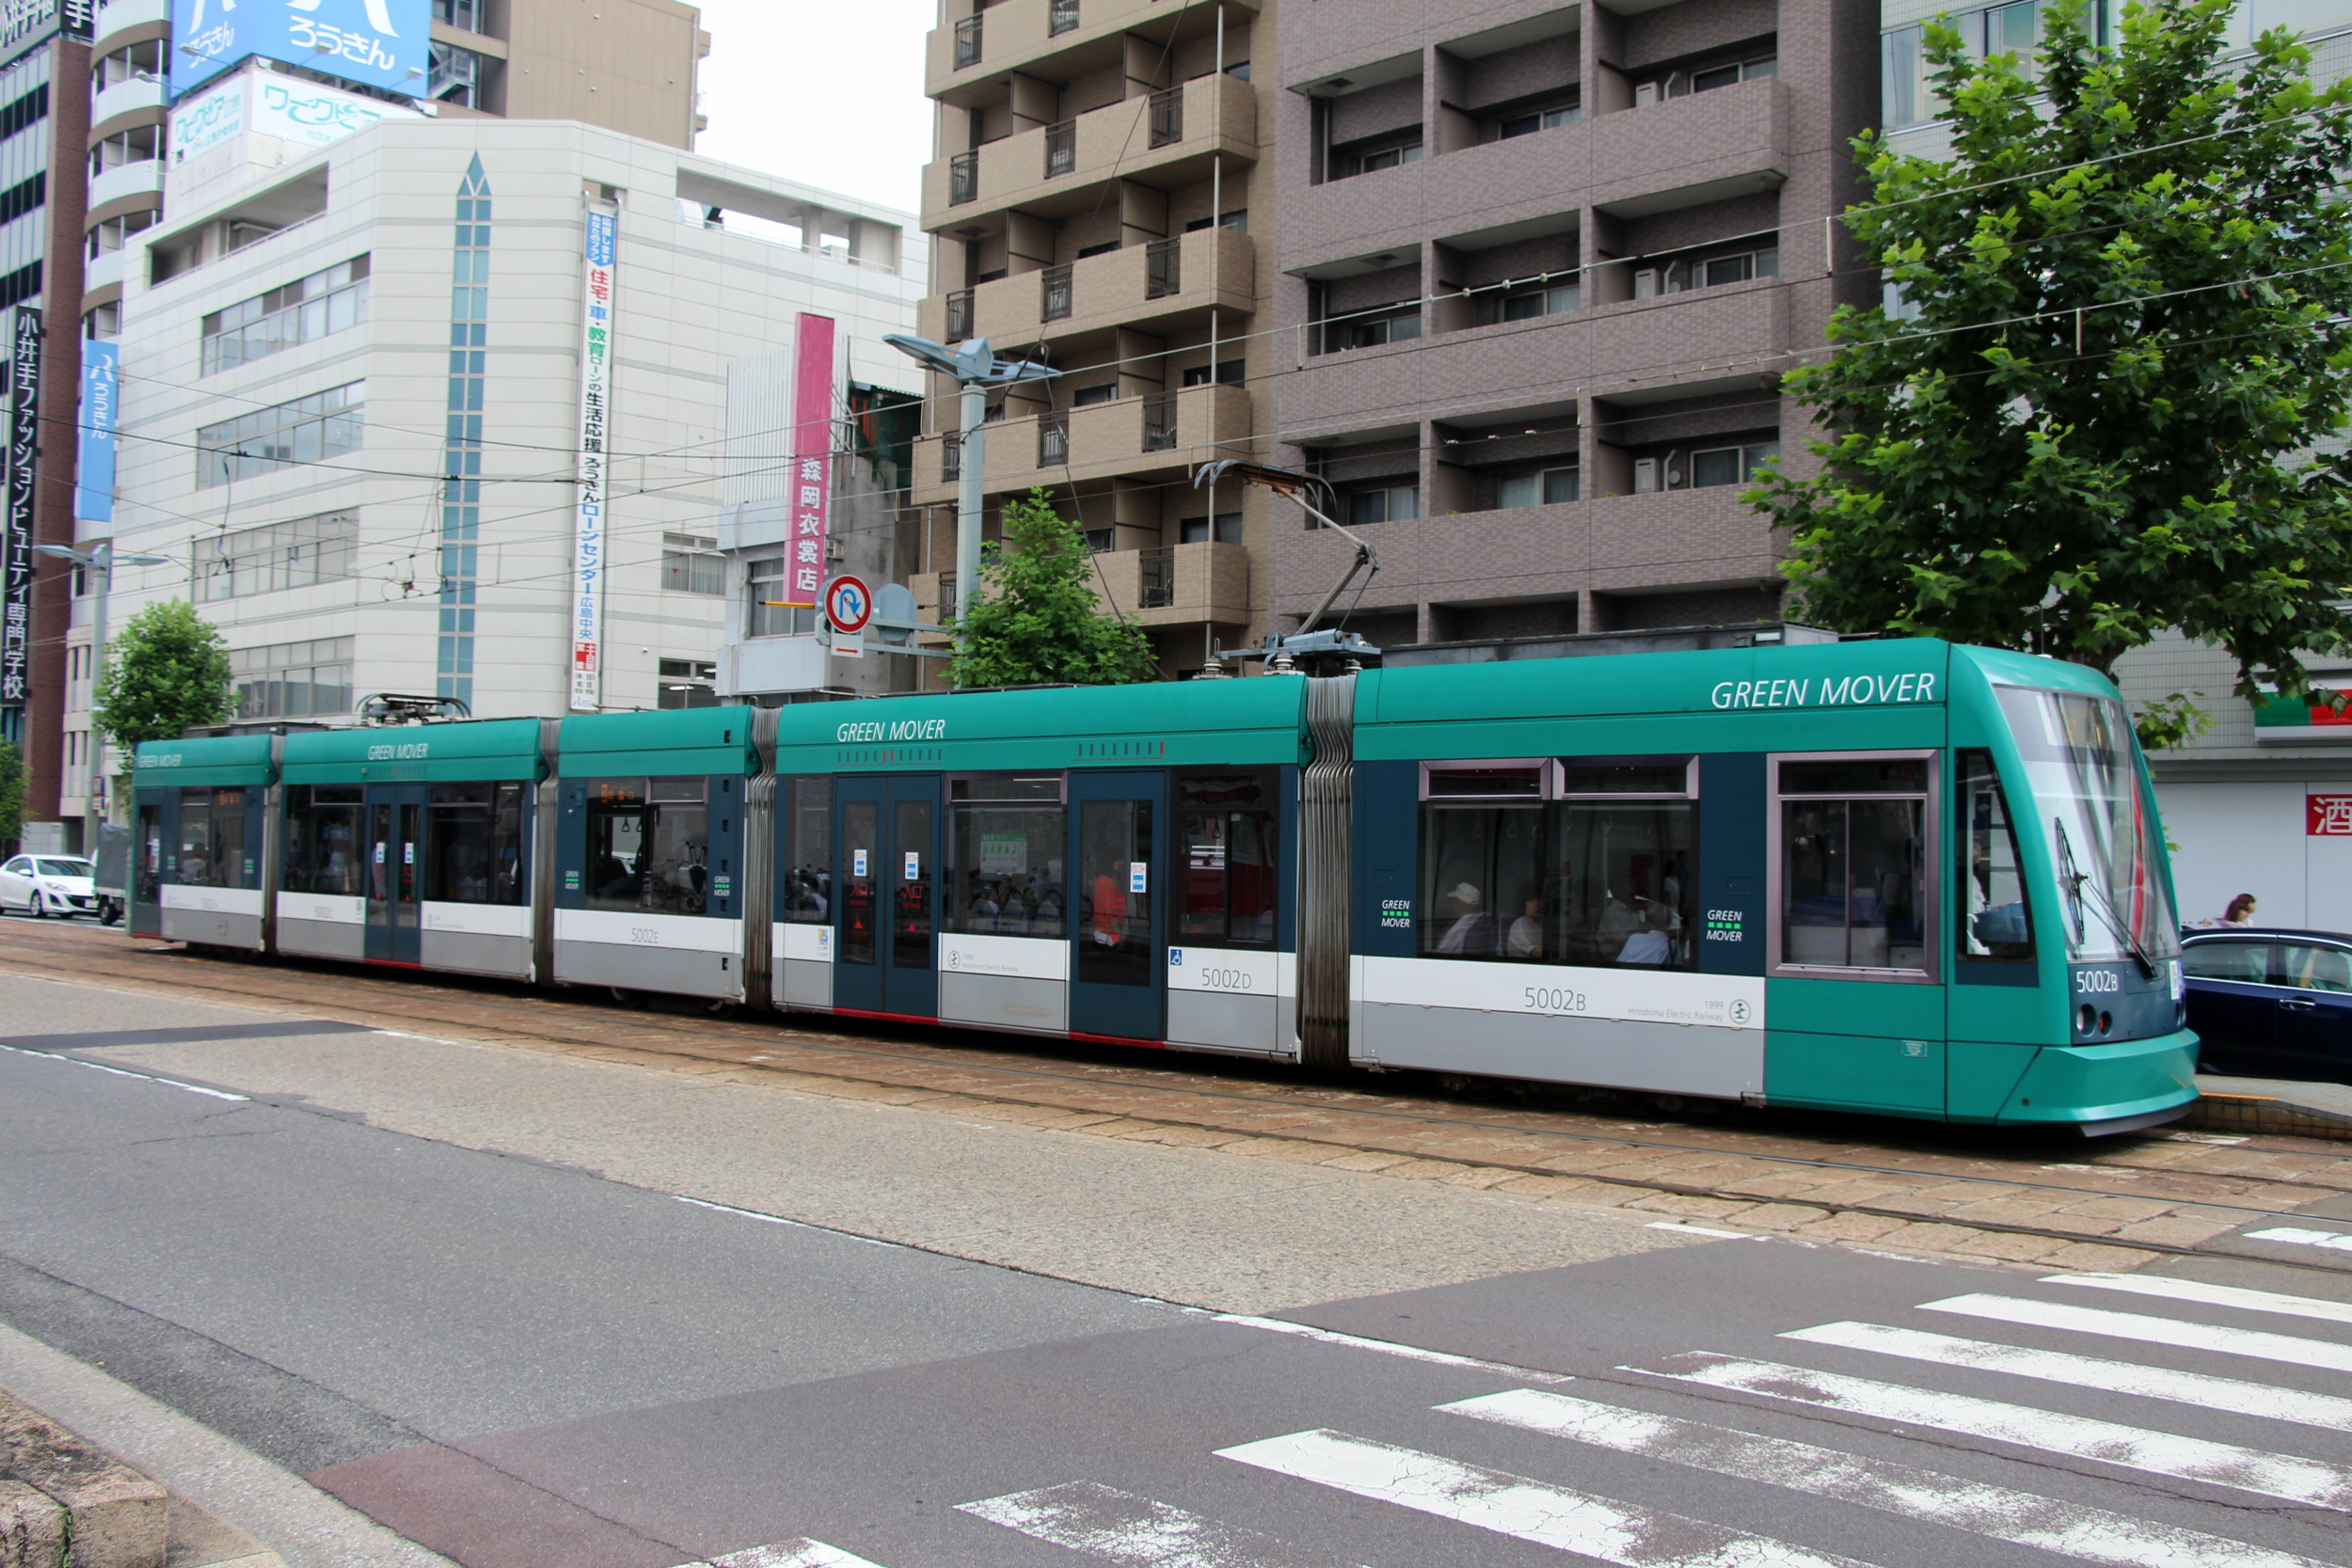 This modern tram car in Hiroshima runs on the same track as the adjacent old tram car.